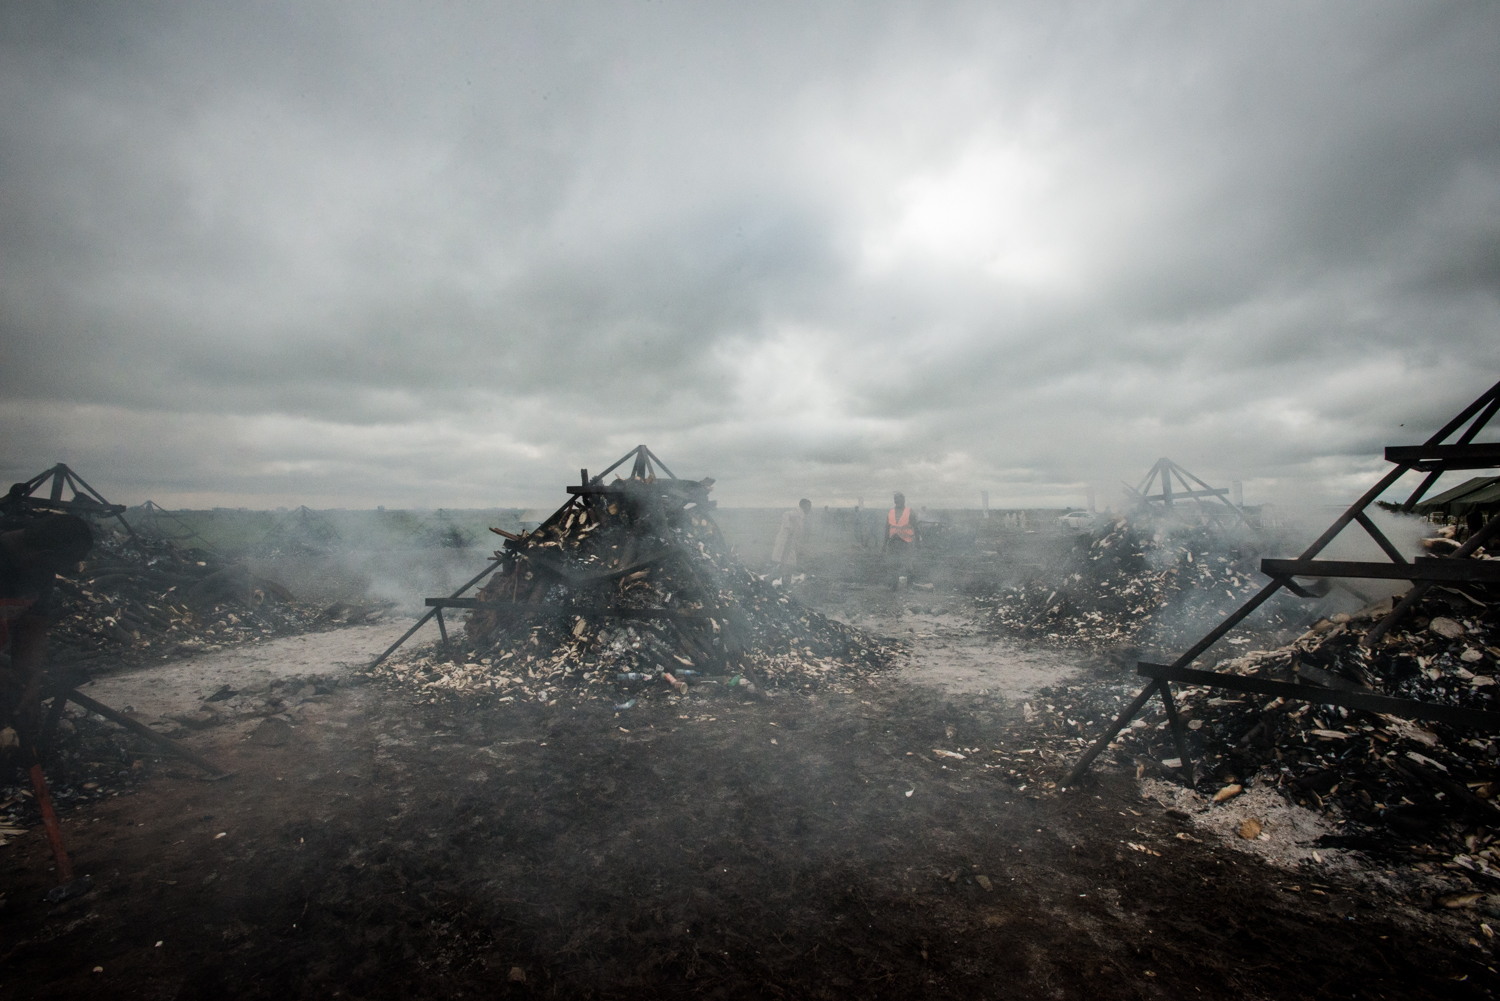 Two days after the burn, the incinerated piles are still smoking. Photo by Mia Collis for the Kenya Wildlife Service